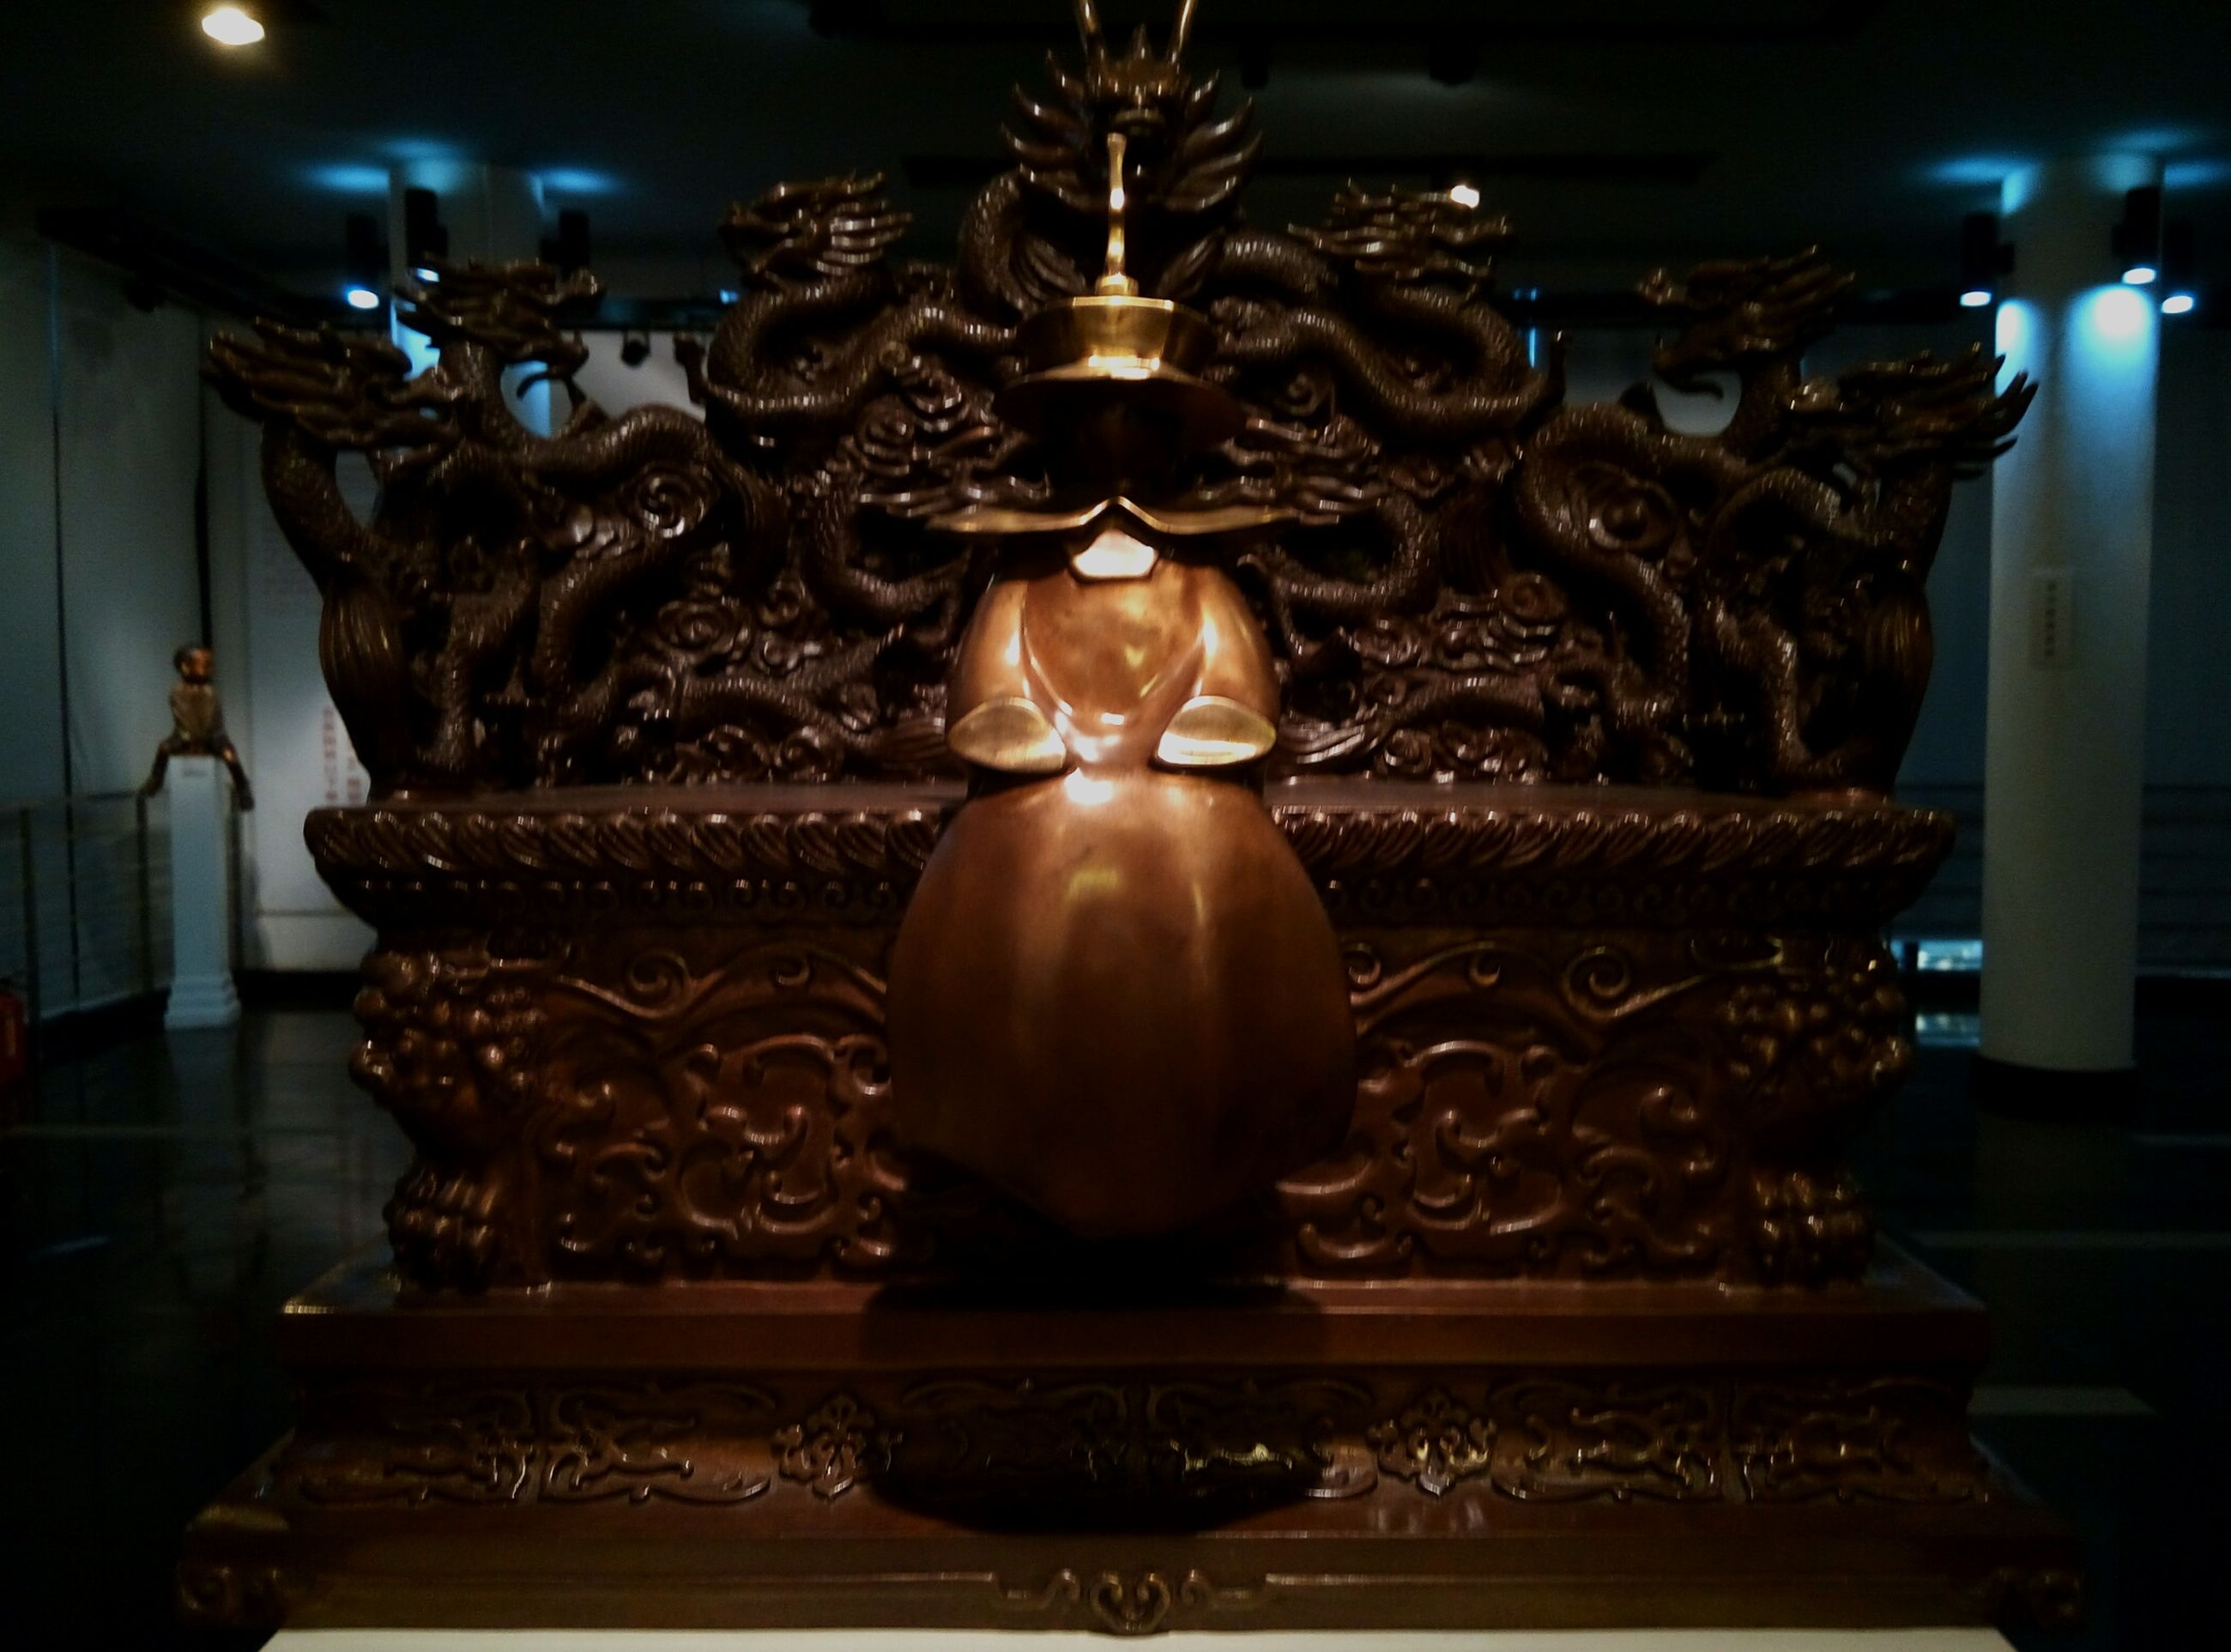 indoors, art and craft, art, religion, statue, sculpture, place of worship, creativity, human representation, spirituality, illuminated, ornate, buddha, temple - building, decoration, gold colored, night, design